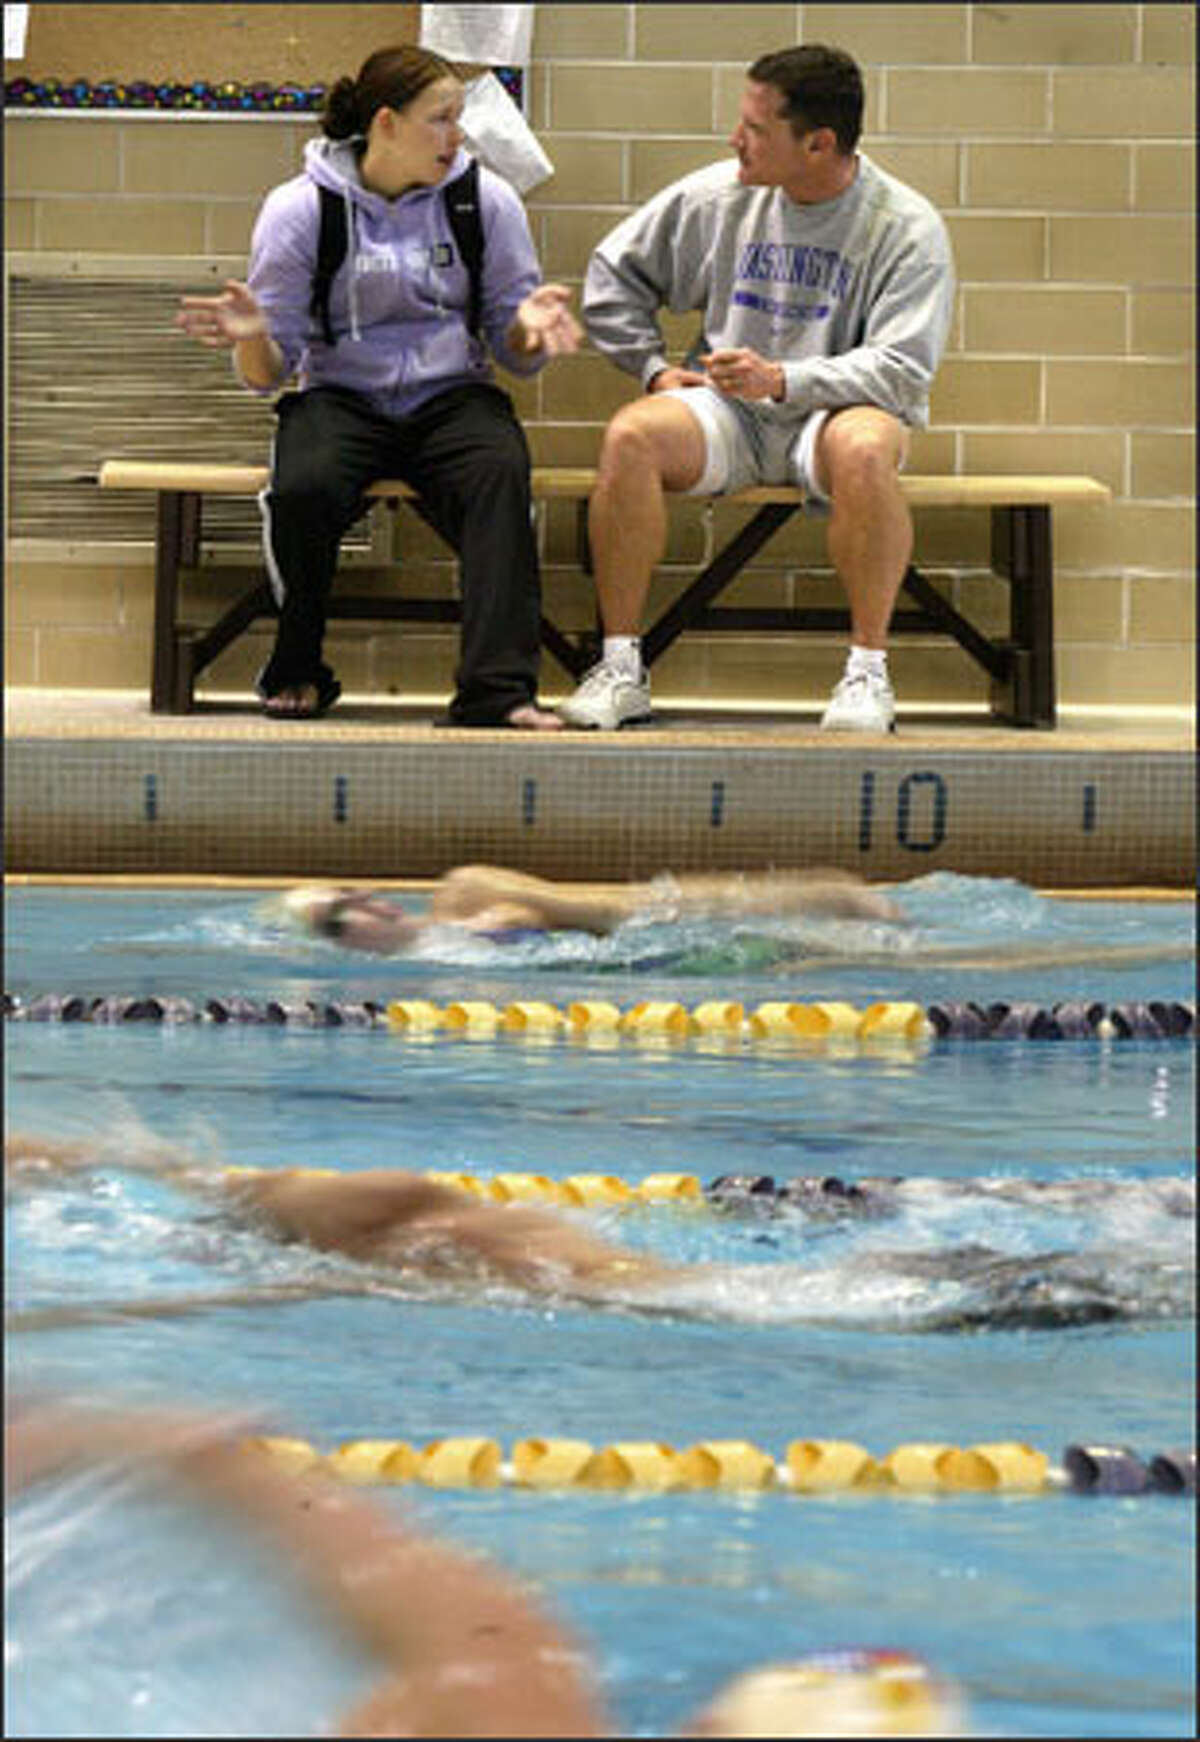 Mickey Wender, who coaches both the men's and women's swim teams at the University of Washington, talks with Caitlyn Shortt during a UW men's practice.